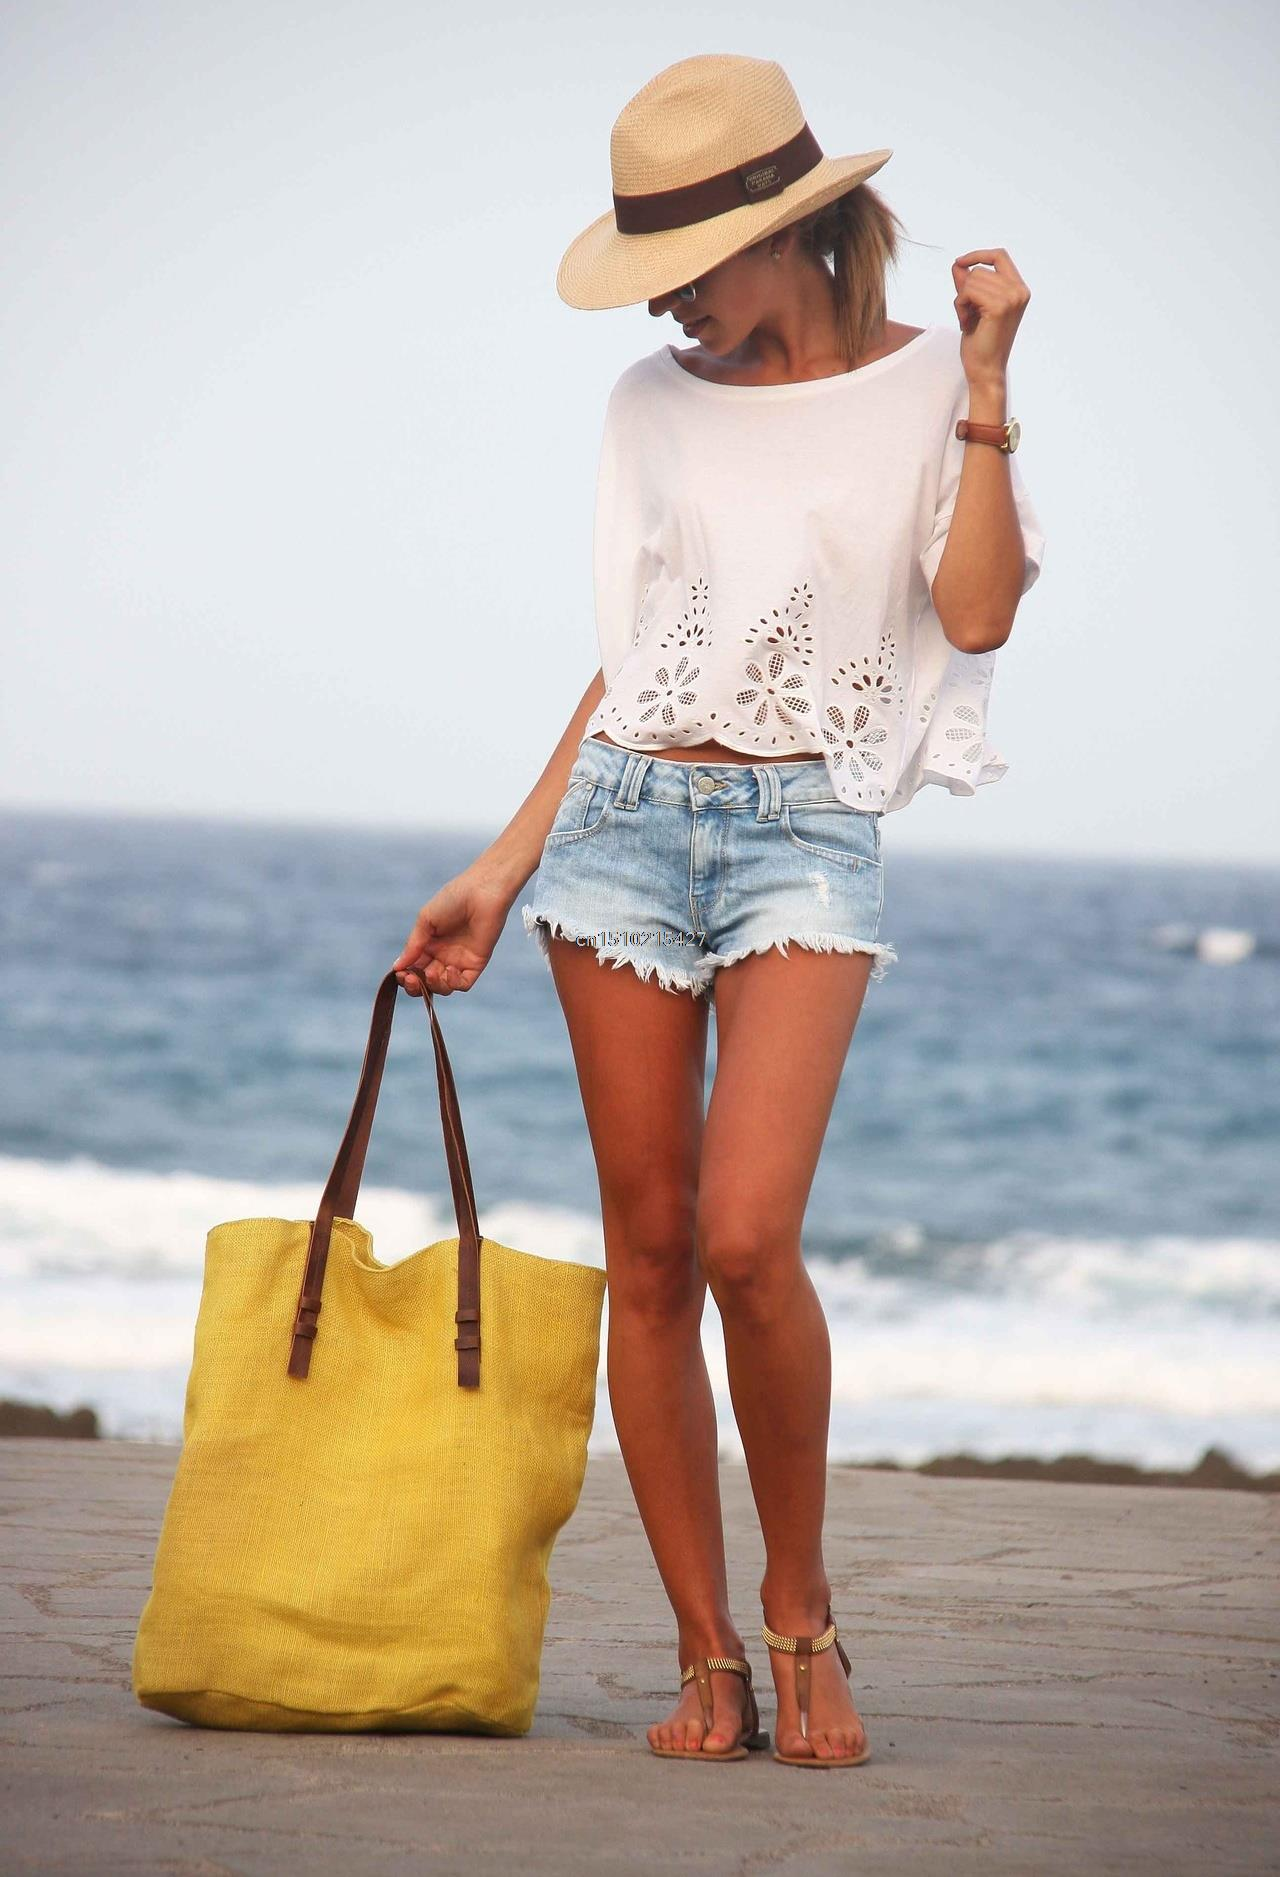 Frayed Denim Shorts And A Simple White Top Is The Ultimate Beach Look Pair With